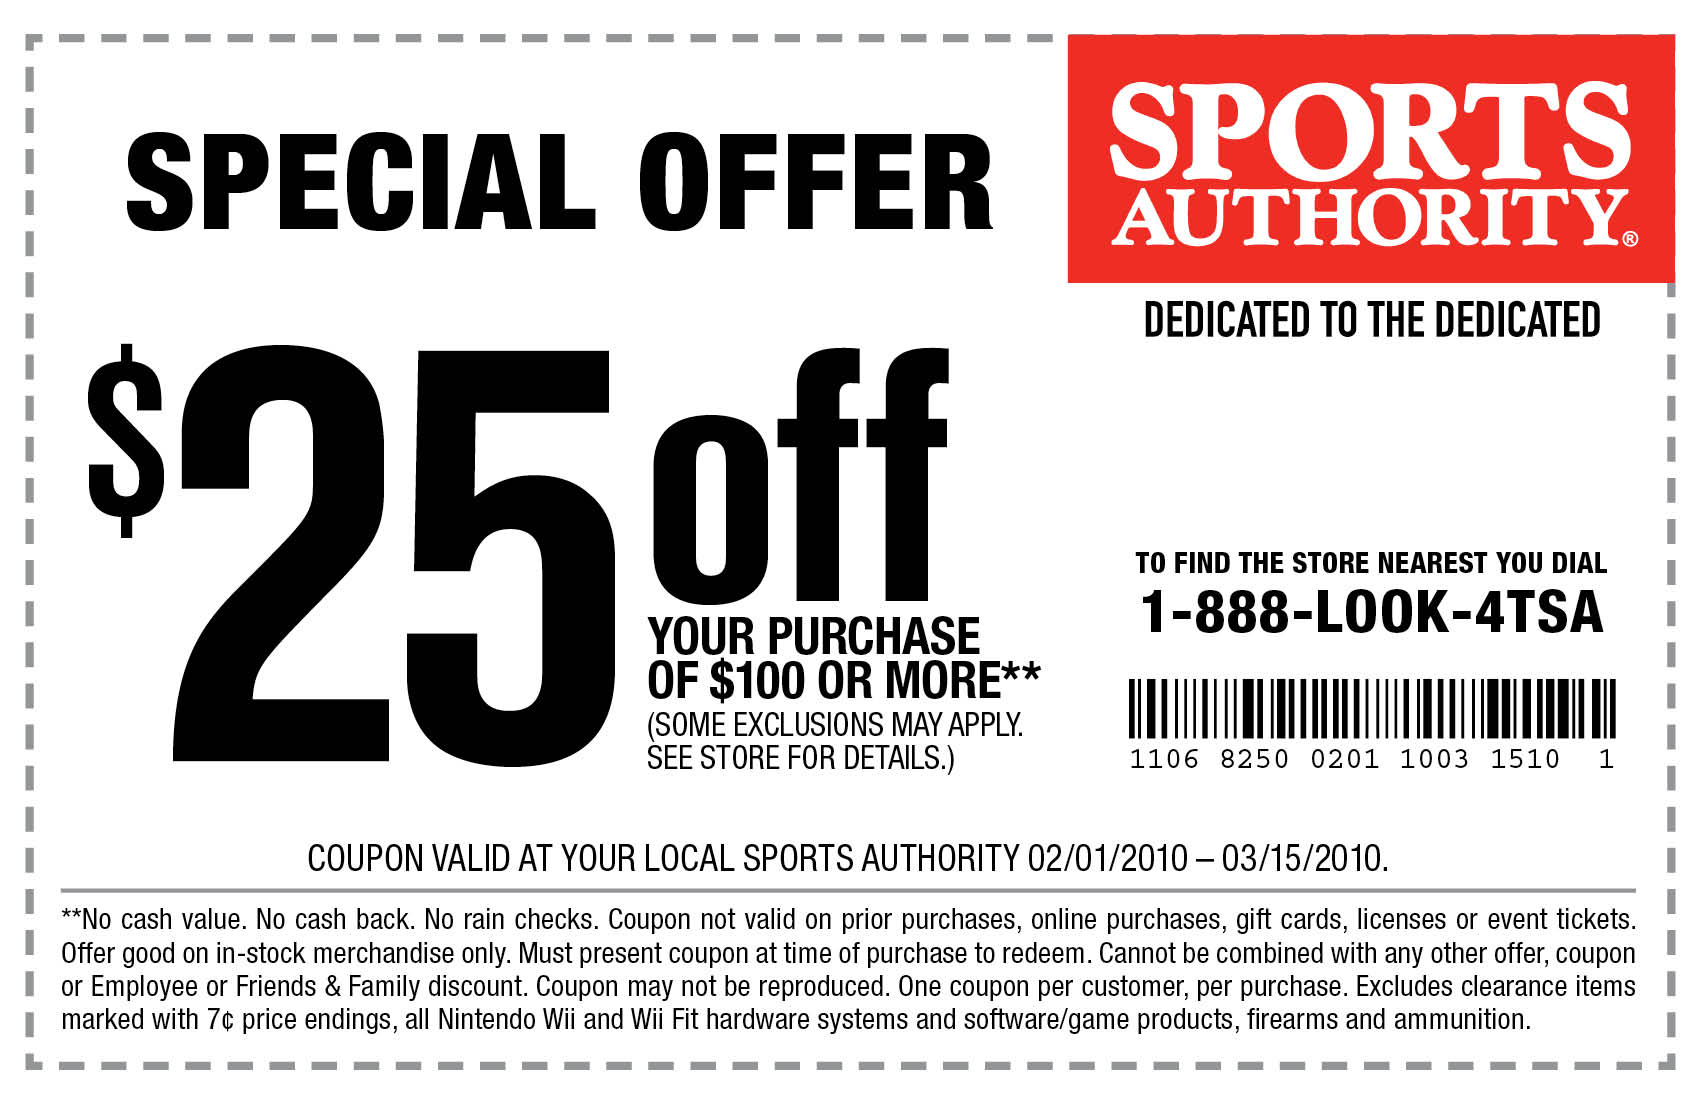 For Sports Authority we currently have 1 coupons and 1 deals. Our users can save with our coupons on average about $ Todays best offer is Take $20 Off w/ Discount Code. If you can't find a coupon or a deal for you product then sign up for alerts and you will get updates on every new coupon added for Sports Authority.